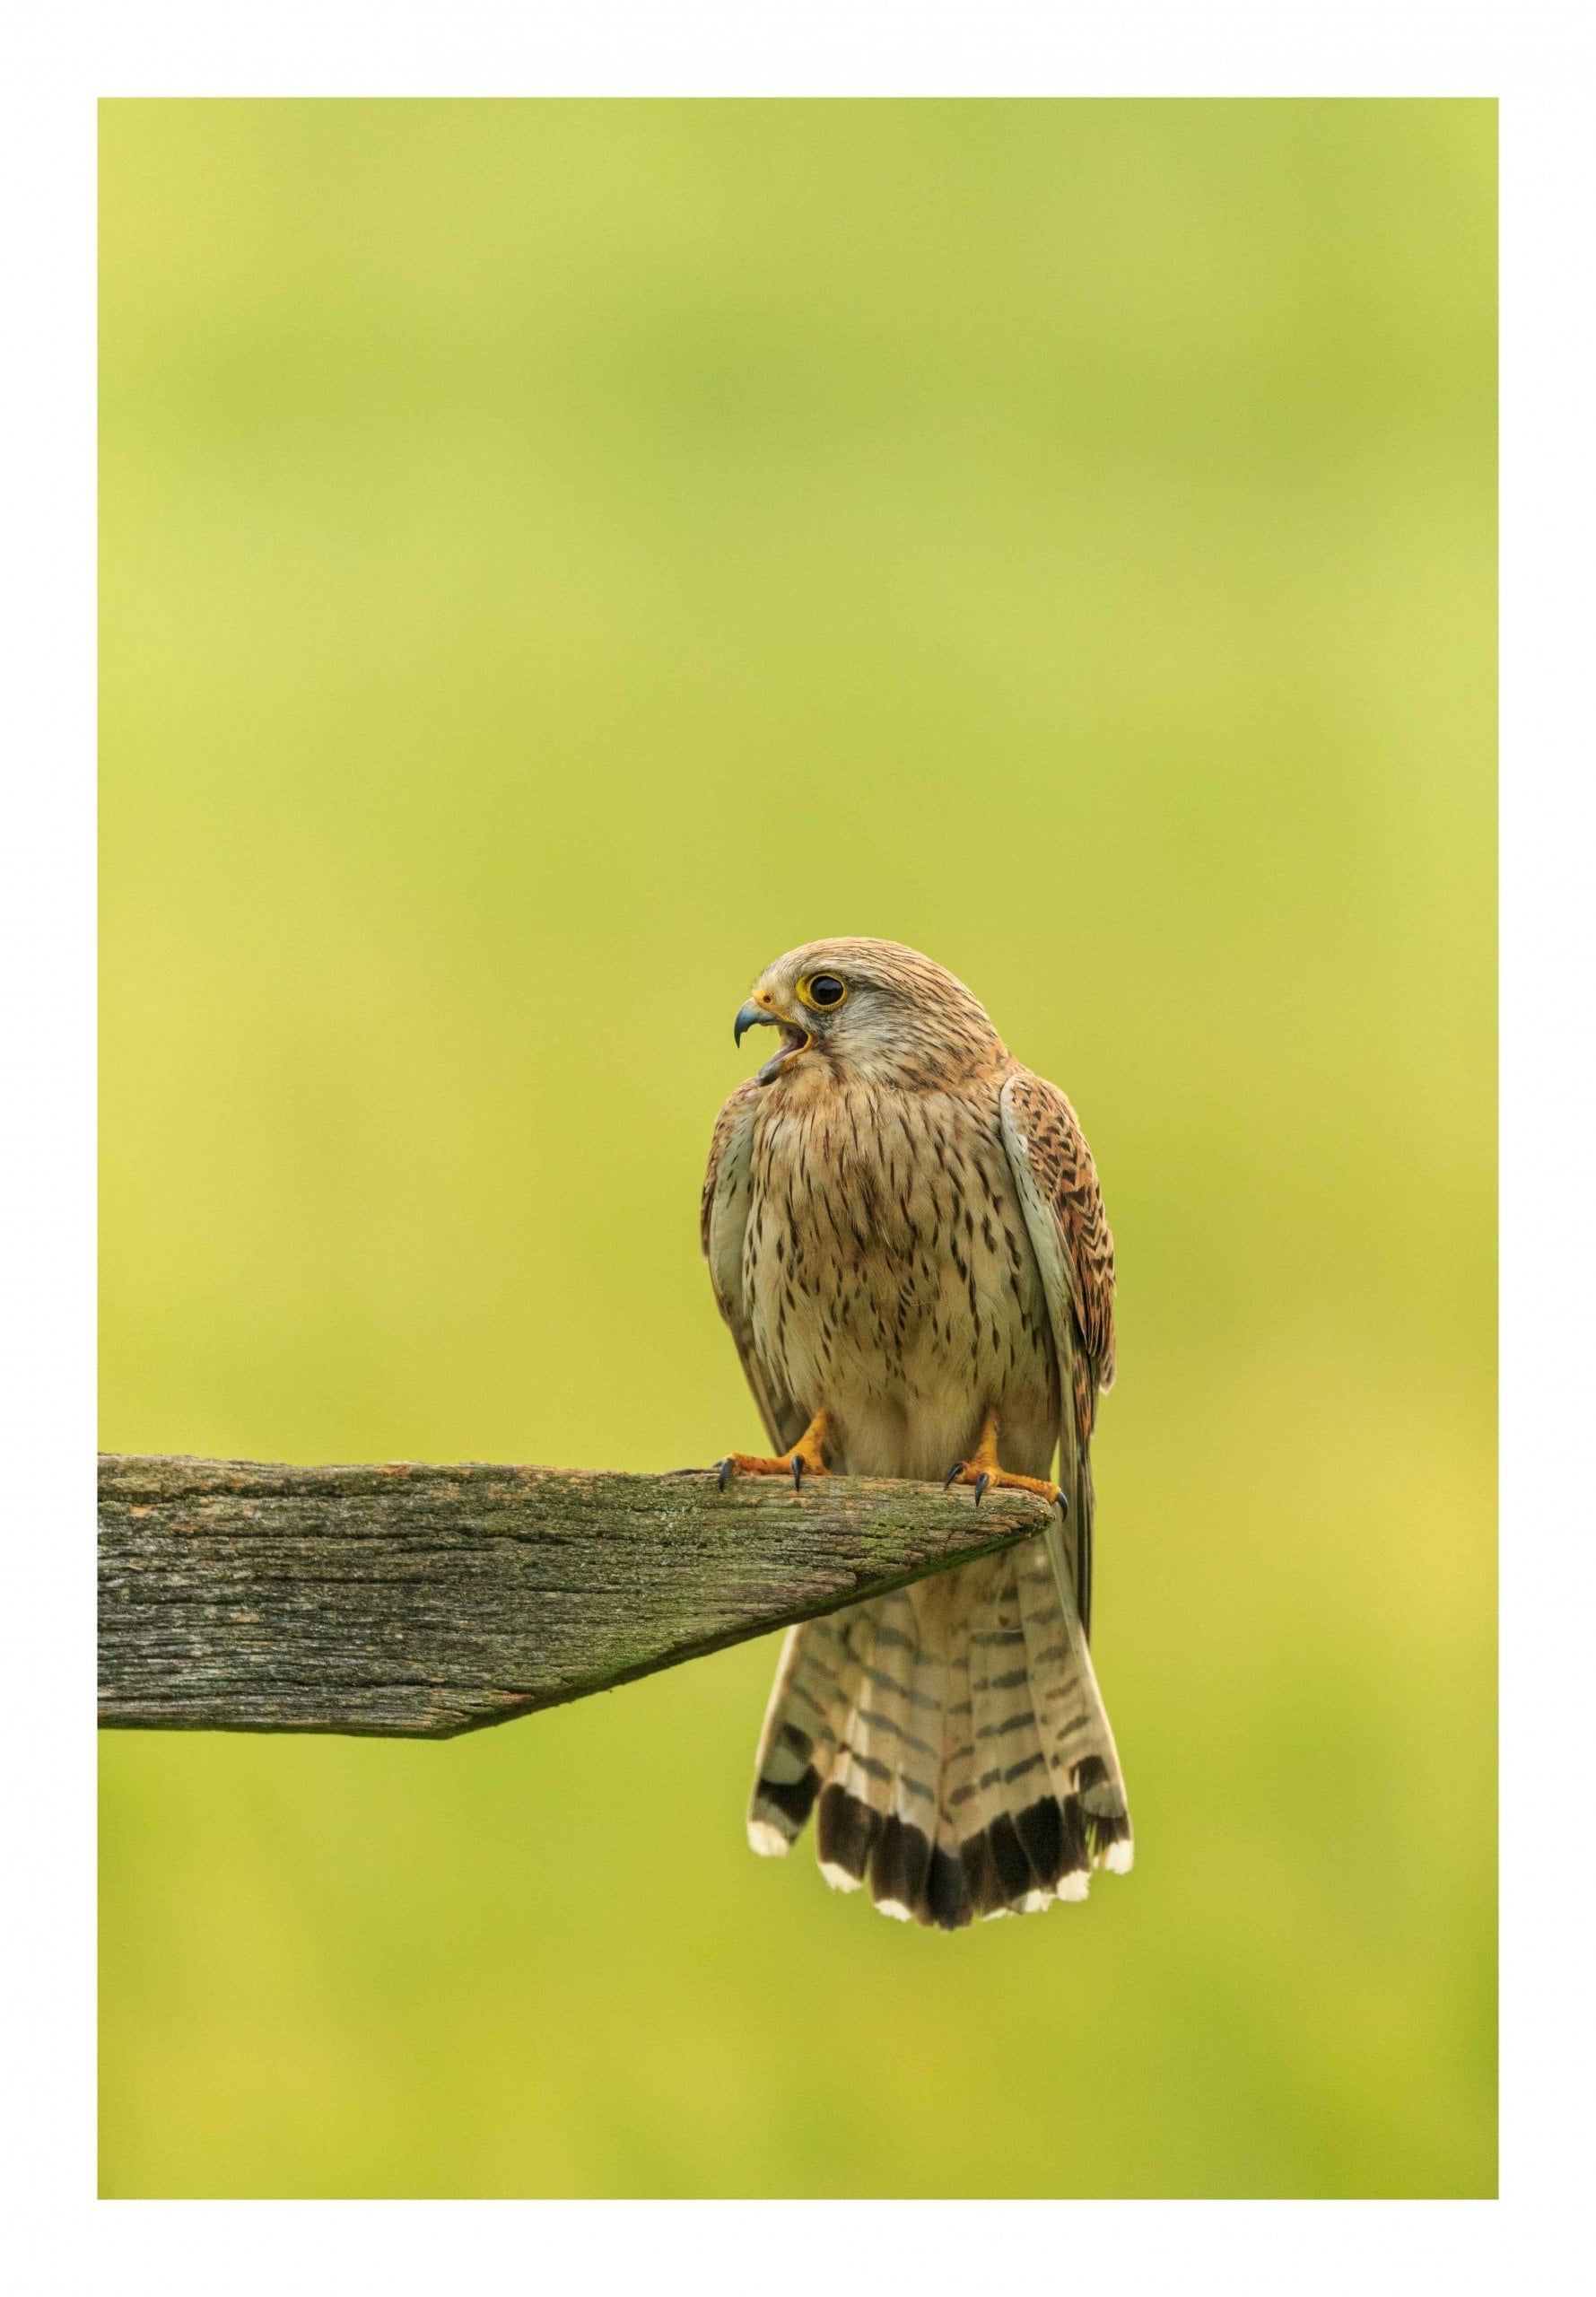 Kestrel smiling